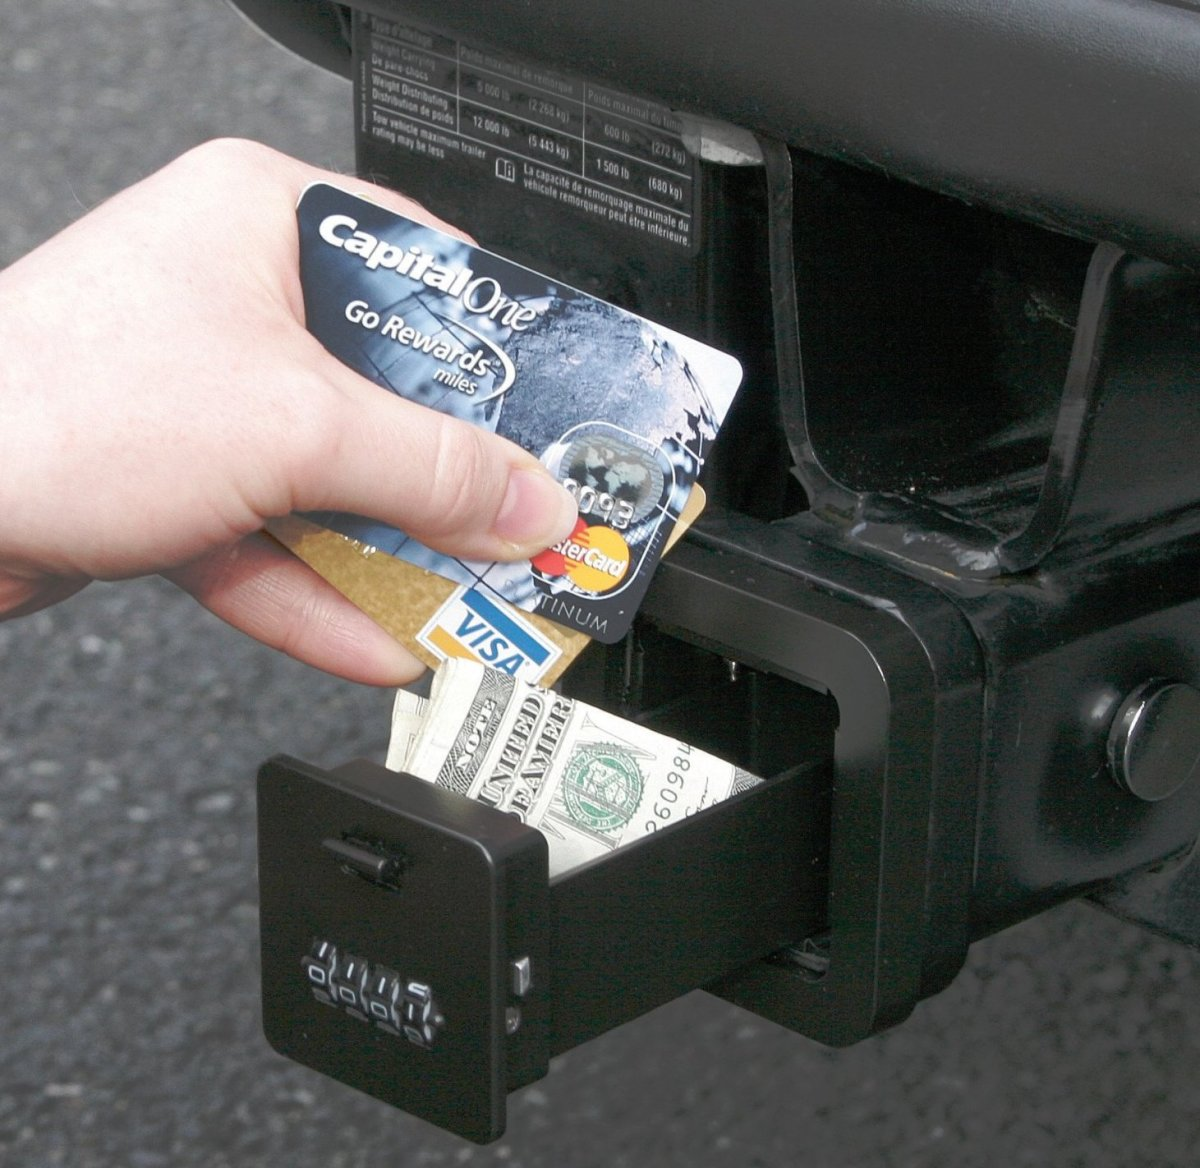 Everyone who hates carrying keys and cards in his pockets while doing sports would love this hitch safe.